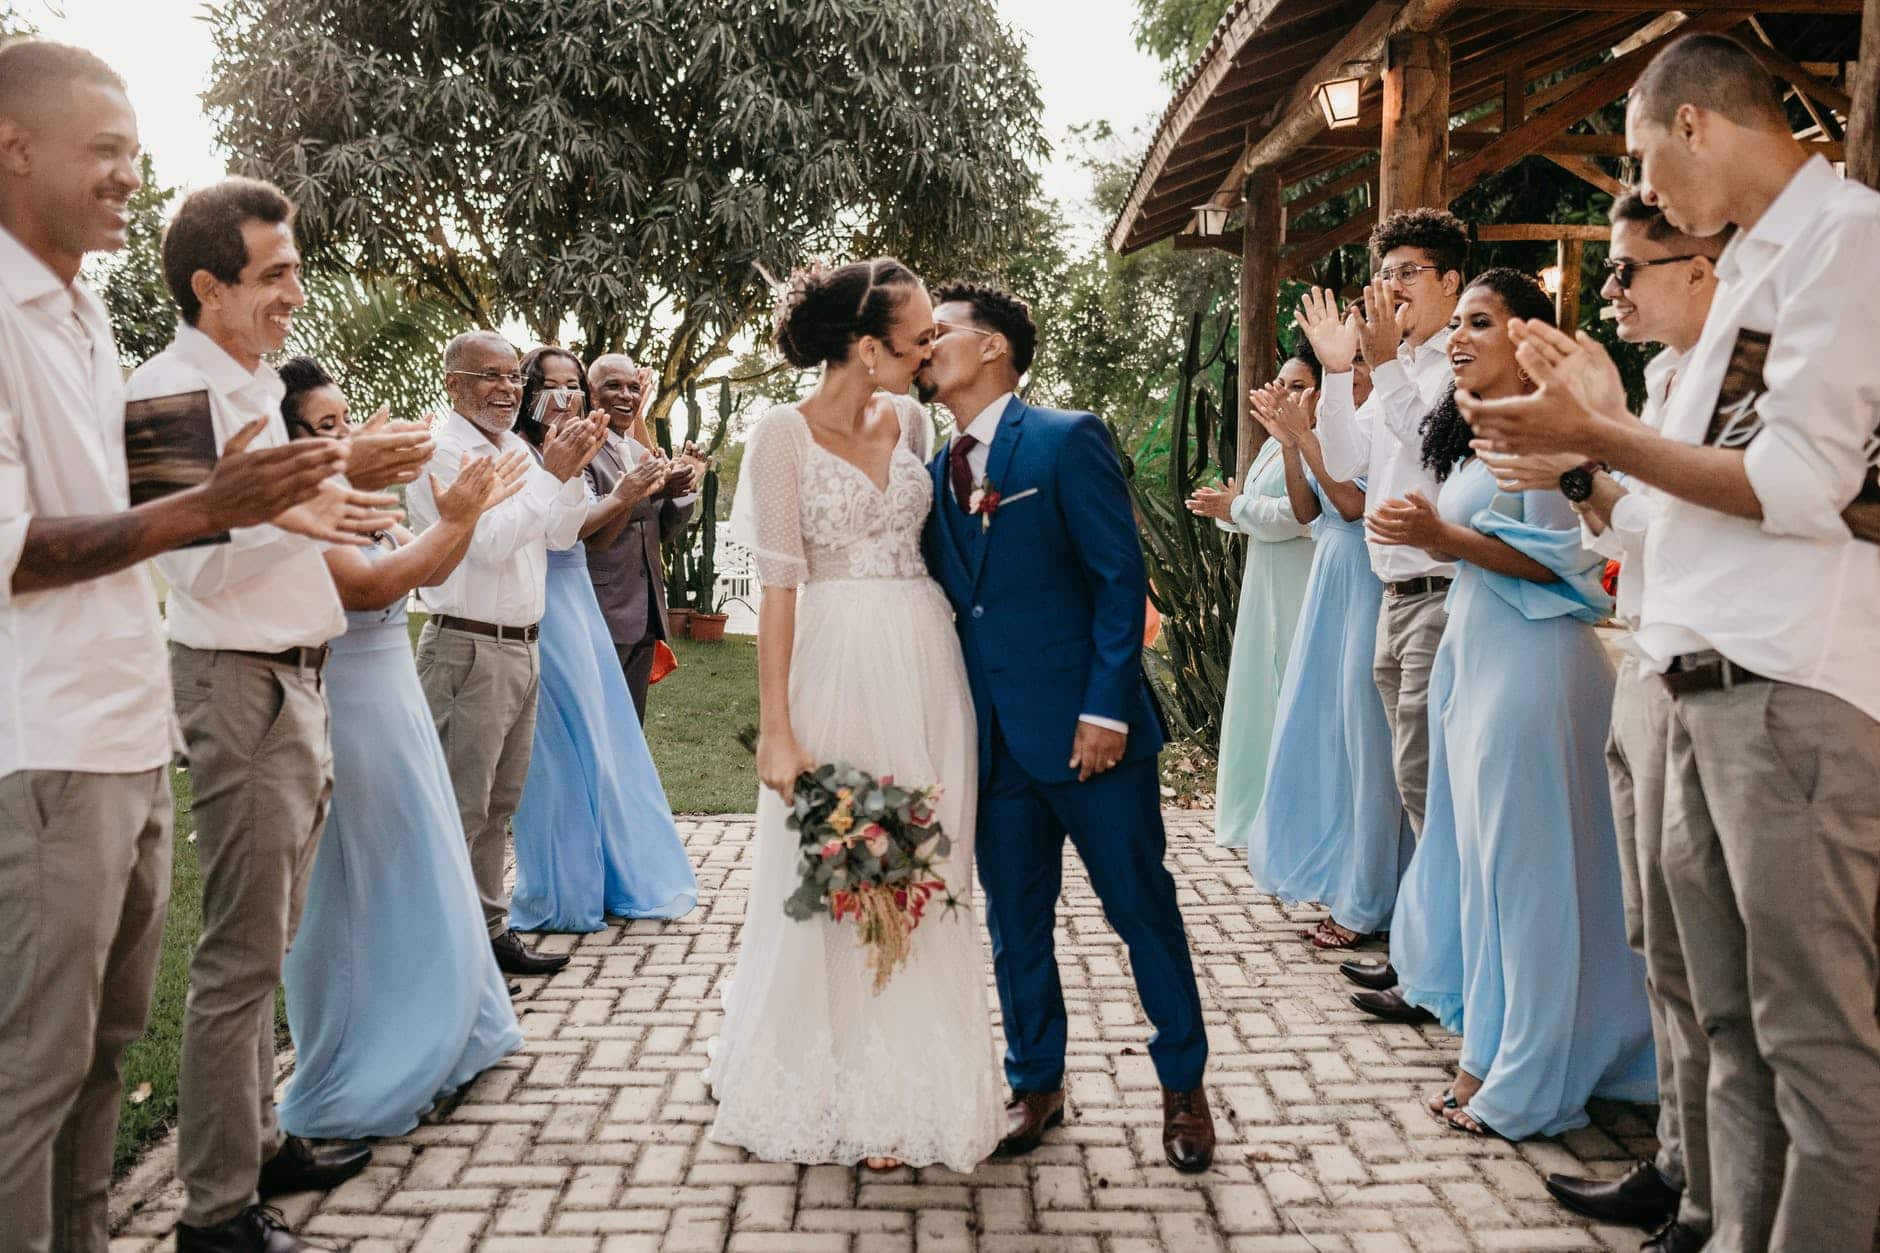 multiethnic couple kissing between smiling guests on wedding day